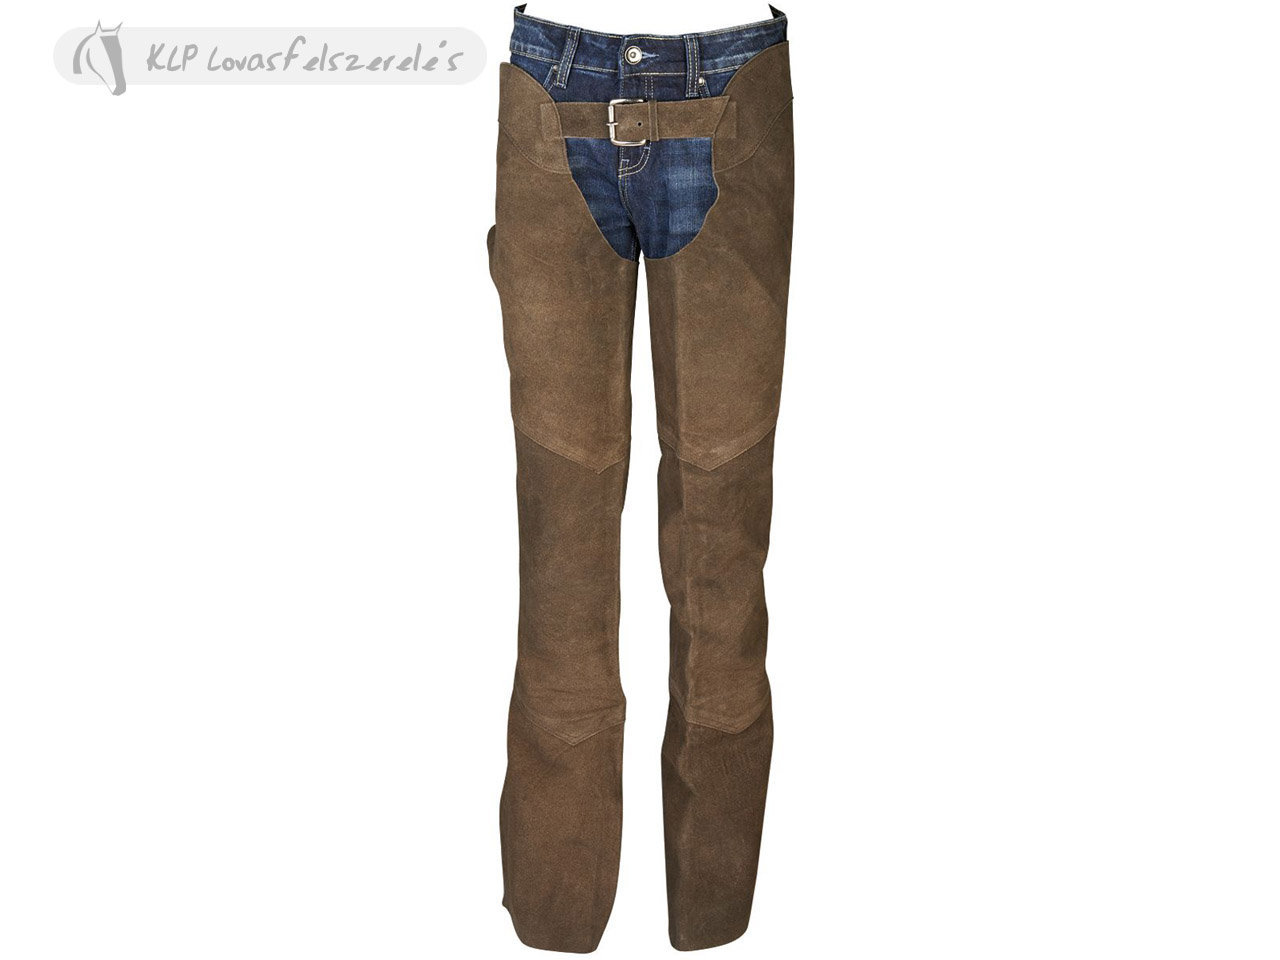 Suede Chaps For Adults